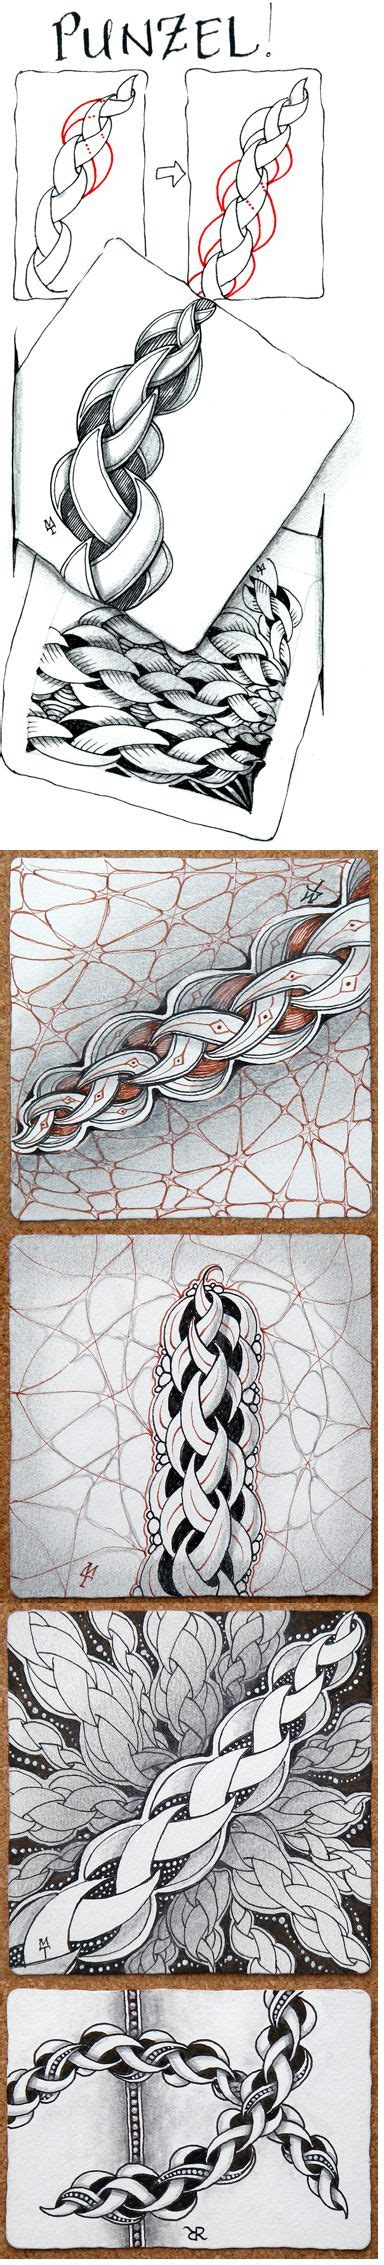 zentangle pattern punzel punzel occifial zentangle tangelation with exles